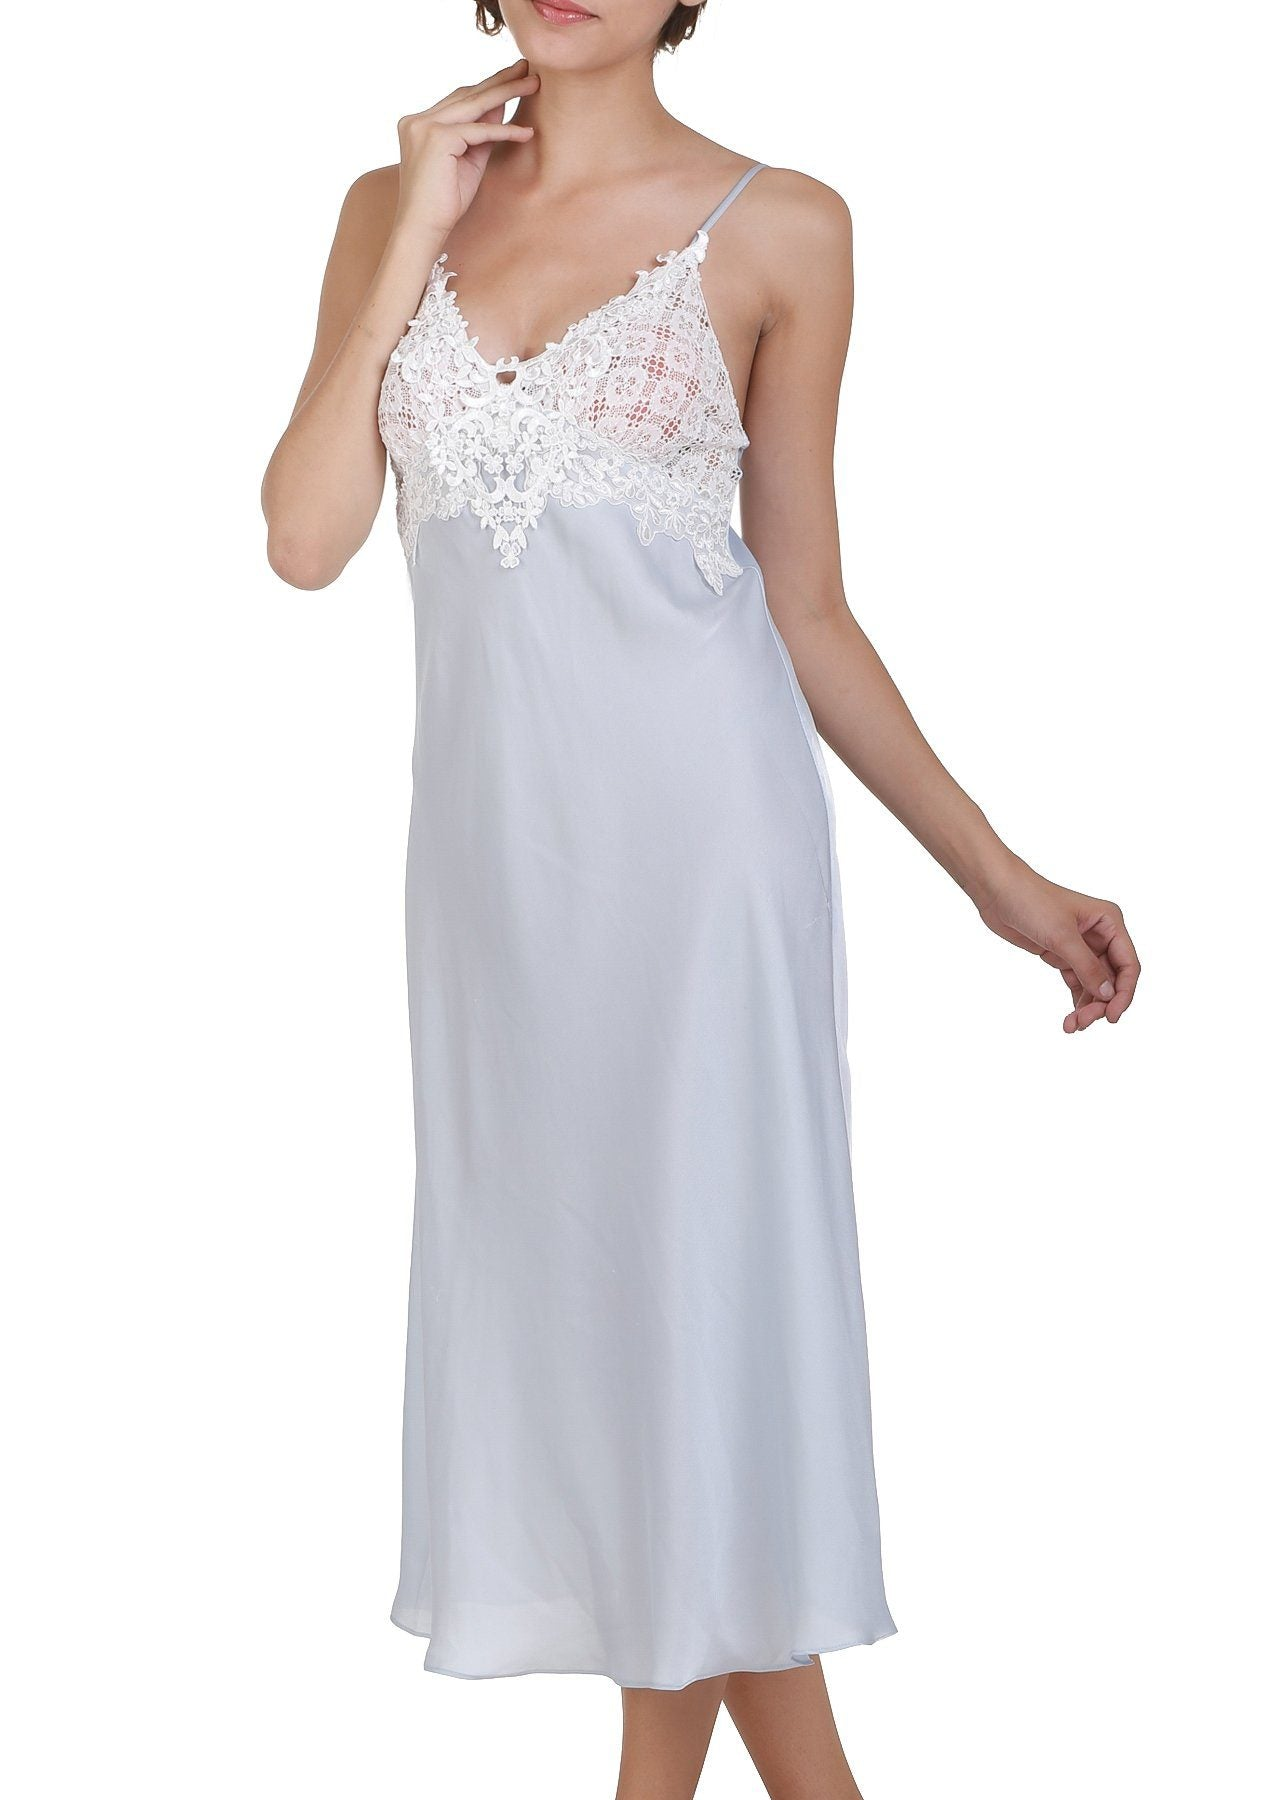 Enchanting Nightgown - Bridal Blue Mystique Intimates